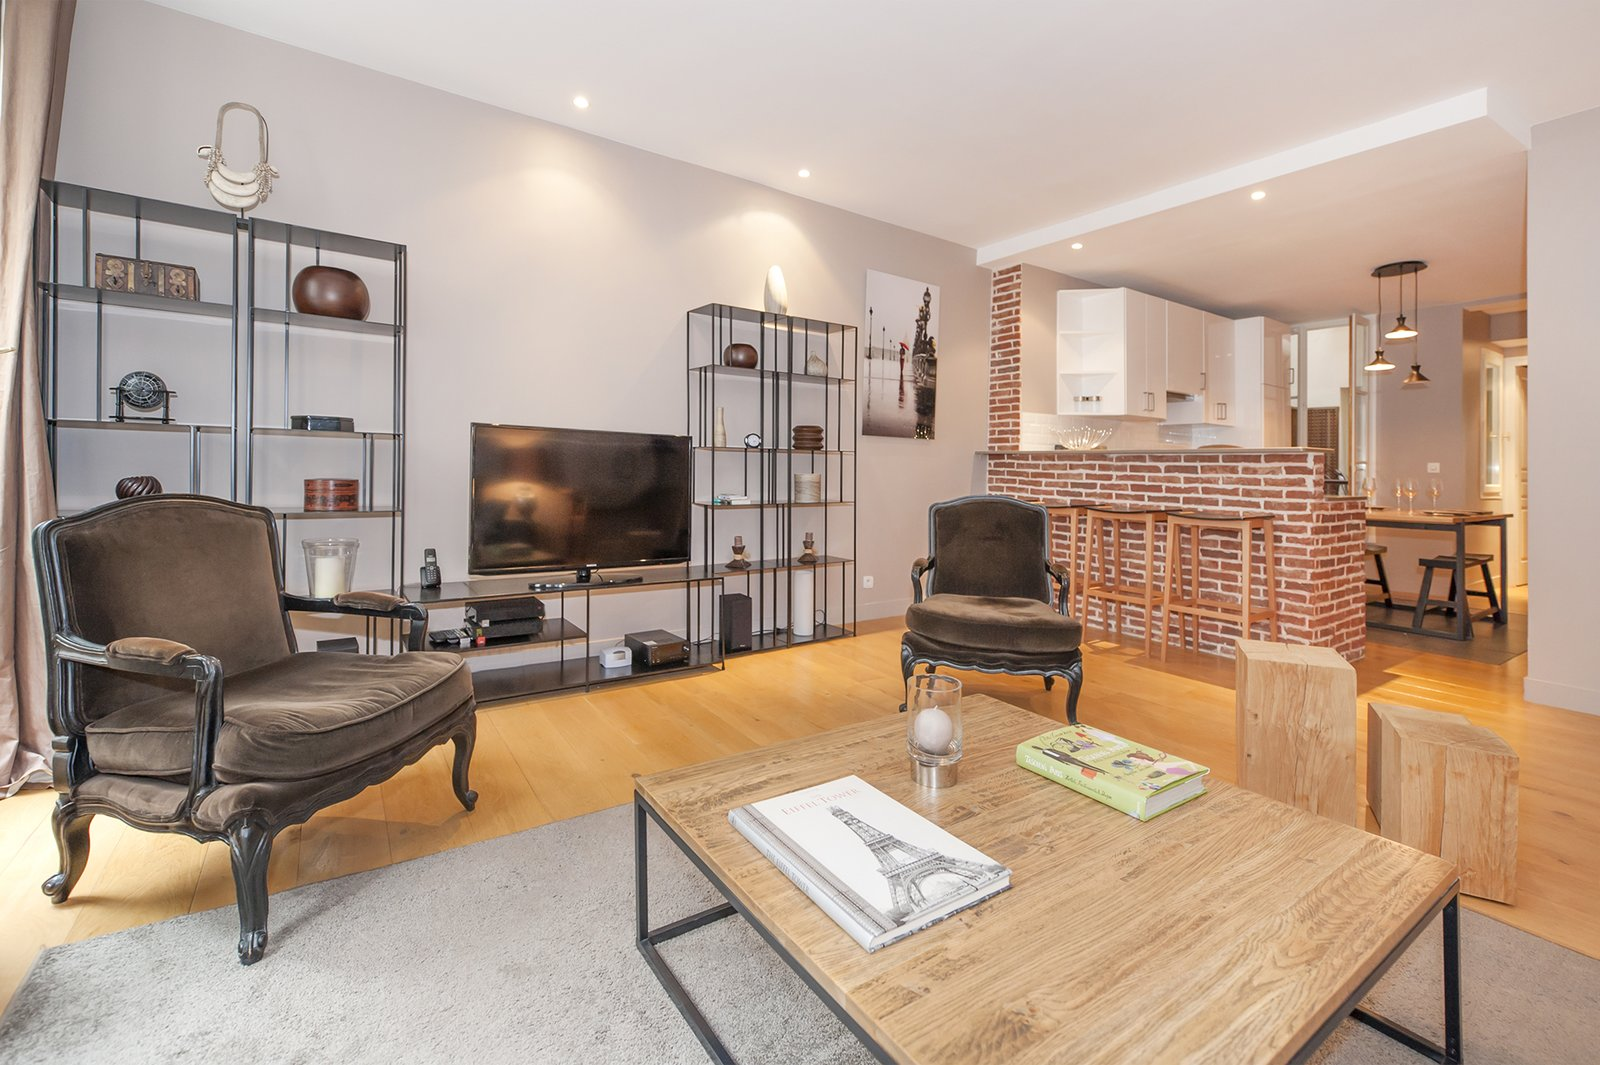 Living Room, Chair, Coffee Tables, Rug Floor, Shelves, Console Tables, Ceiling Lighting, and Light Hardwood Floor  Photo 9 of 9 in 8 Charming Parisian Apartments You'll Want to Book Right Now